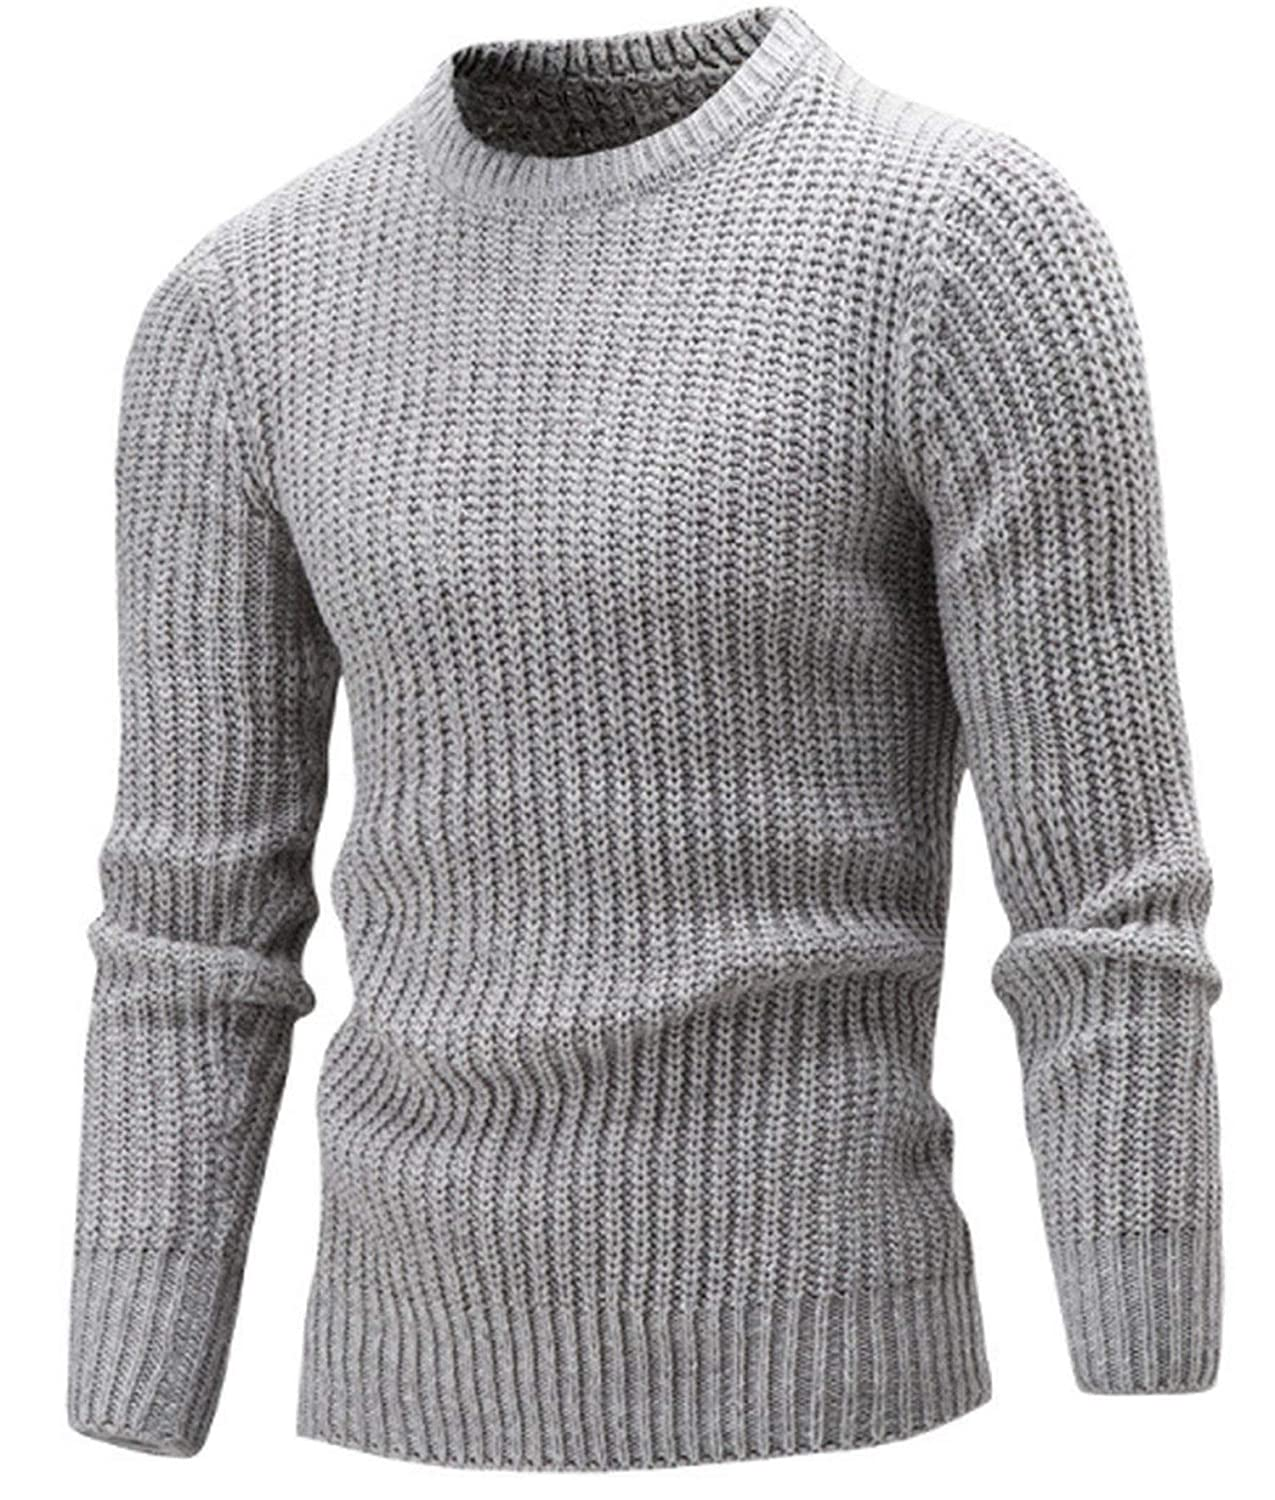 Clothing Men Sweater Simple O-Neck Slim Fit Casual Pullover Men Sweaters Knitting Mens XXL